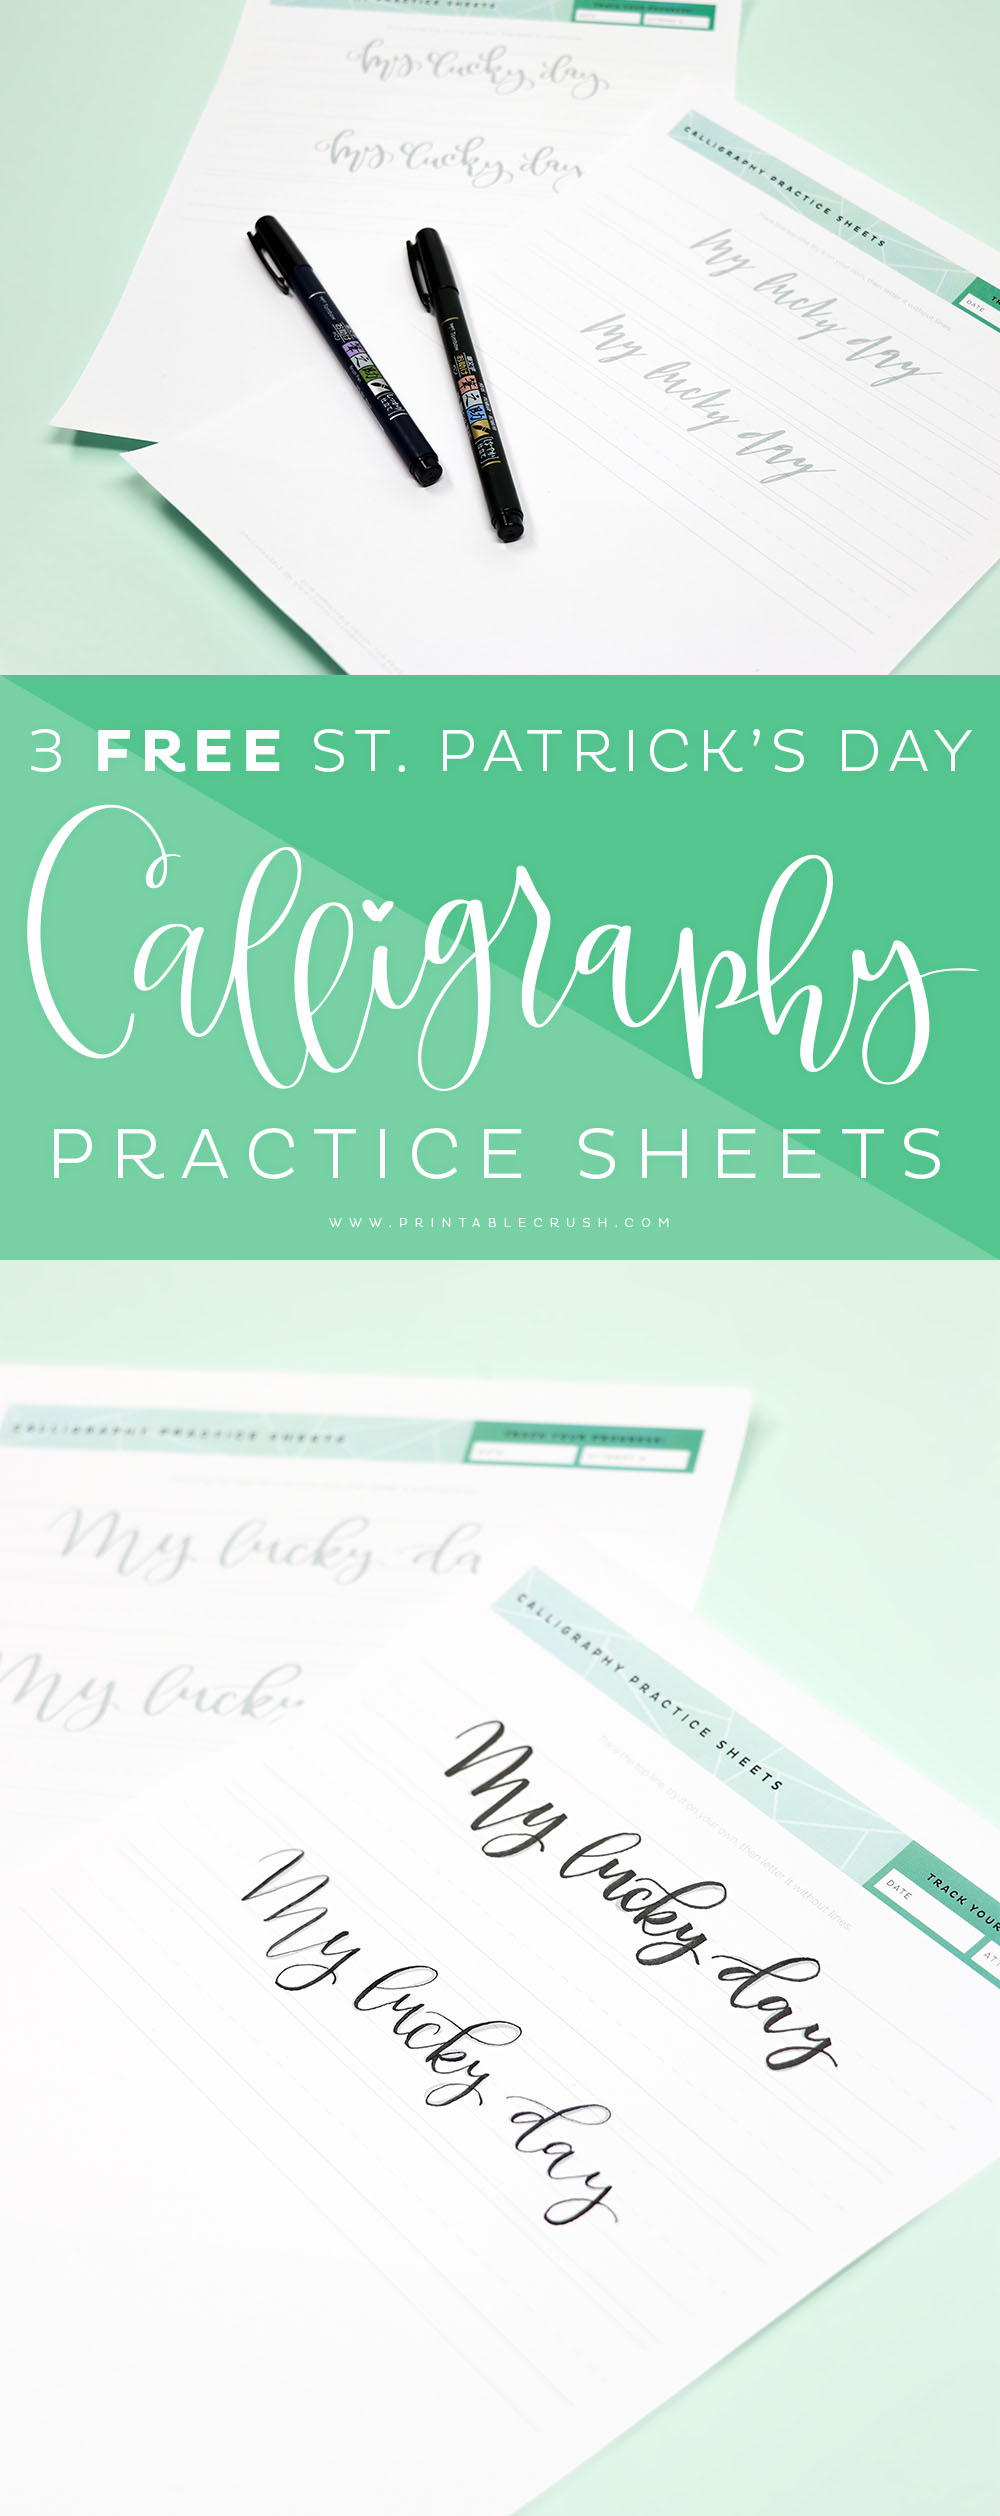 Download these 3 FREE St. Patrick's Day Calligraphy Practice Sheets and practice with brush pens and calligraphy pens!